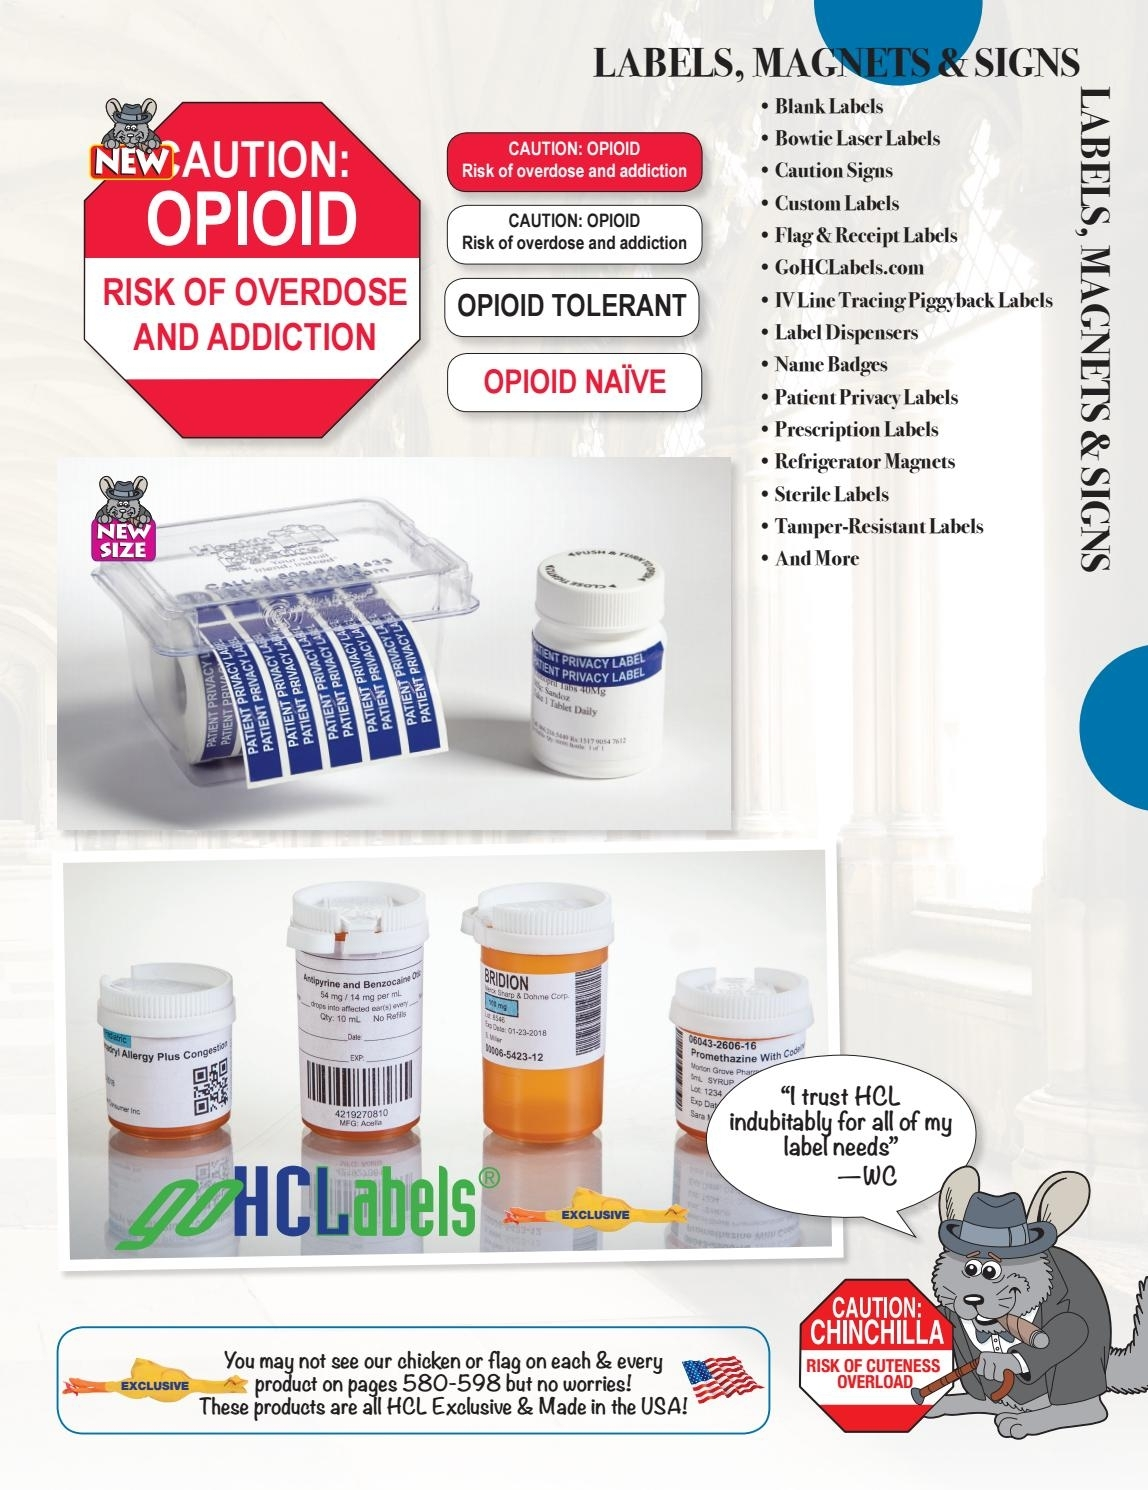 Hcl Winston Churchilla Labels By Health Care Logistics - Issuu